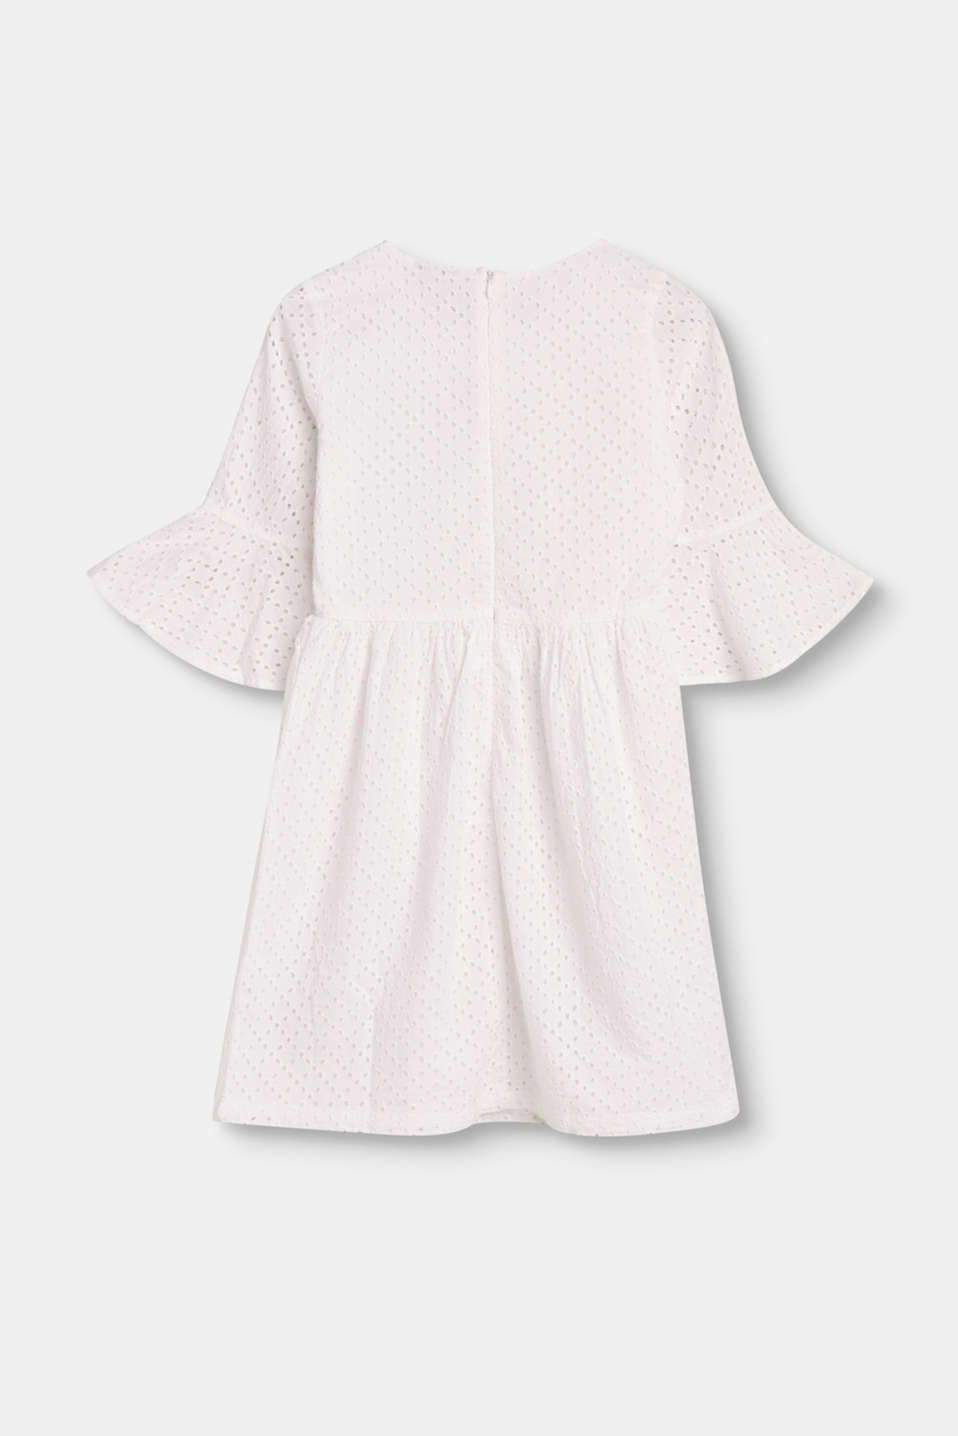 Hippie dress with broderie anglaise, 100% cotton